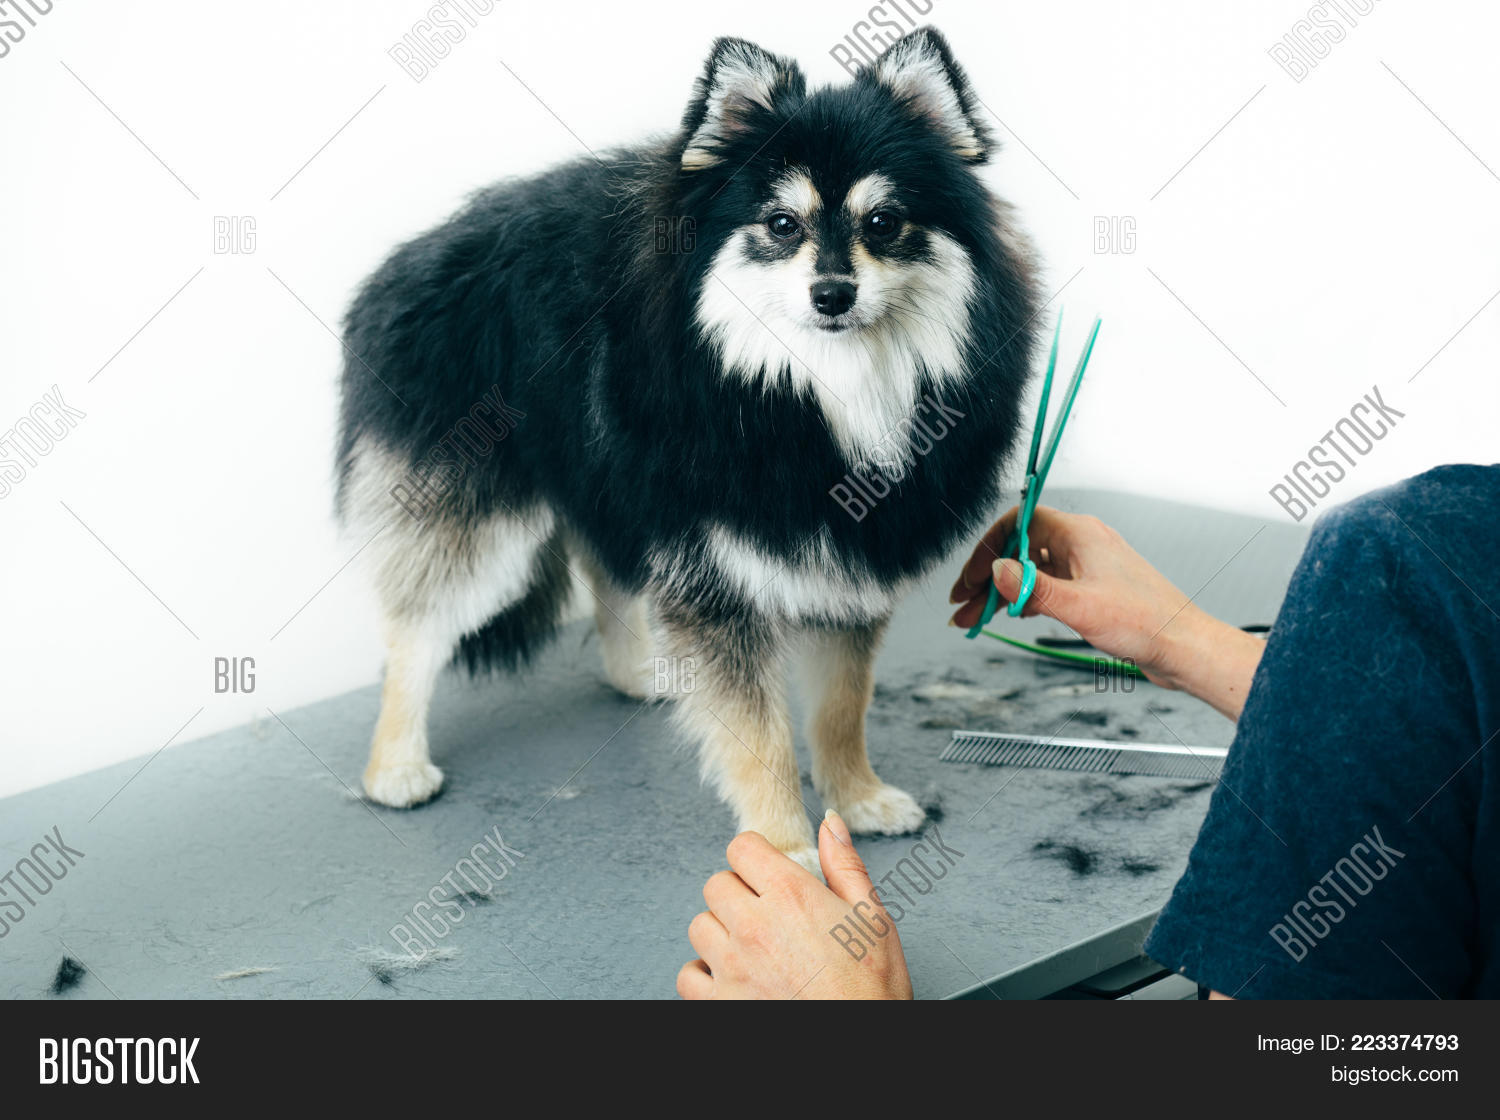 Black Pomeranian Spitz Image Photo Free Trial Bigstock